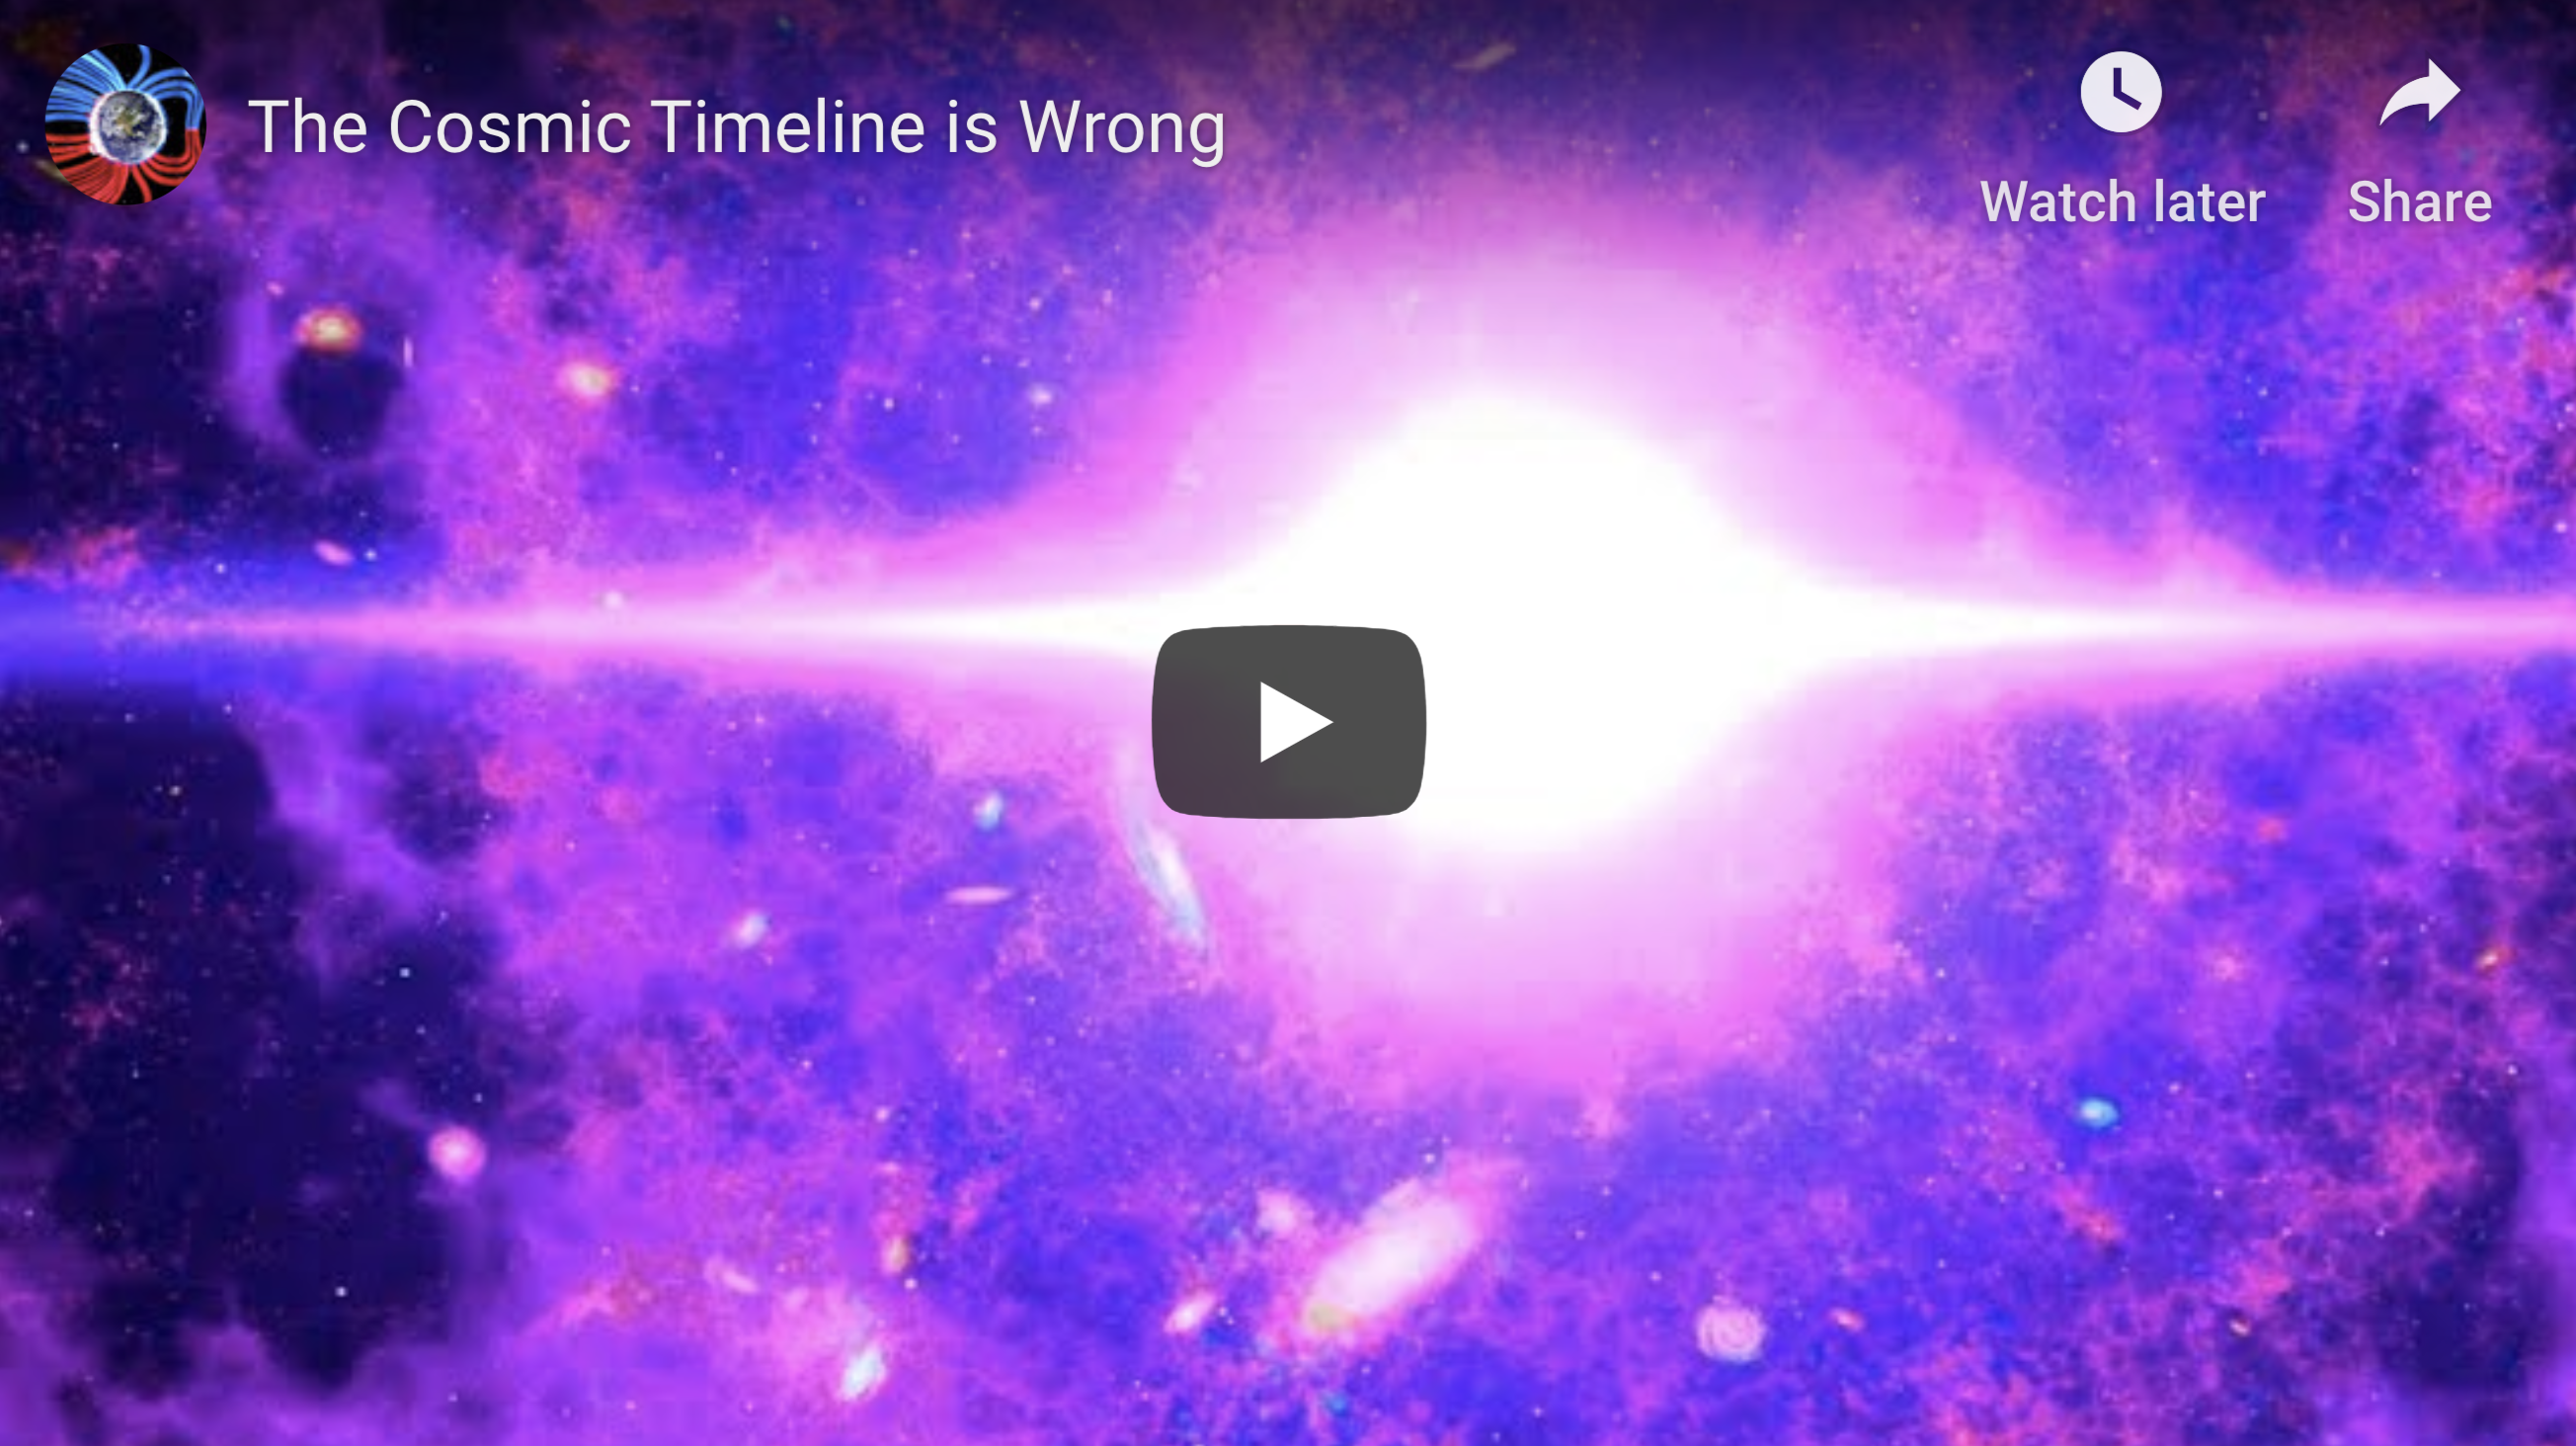 The Cosmic Timeline is Wrong 2 21 2020